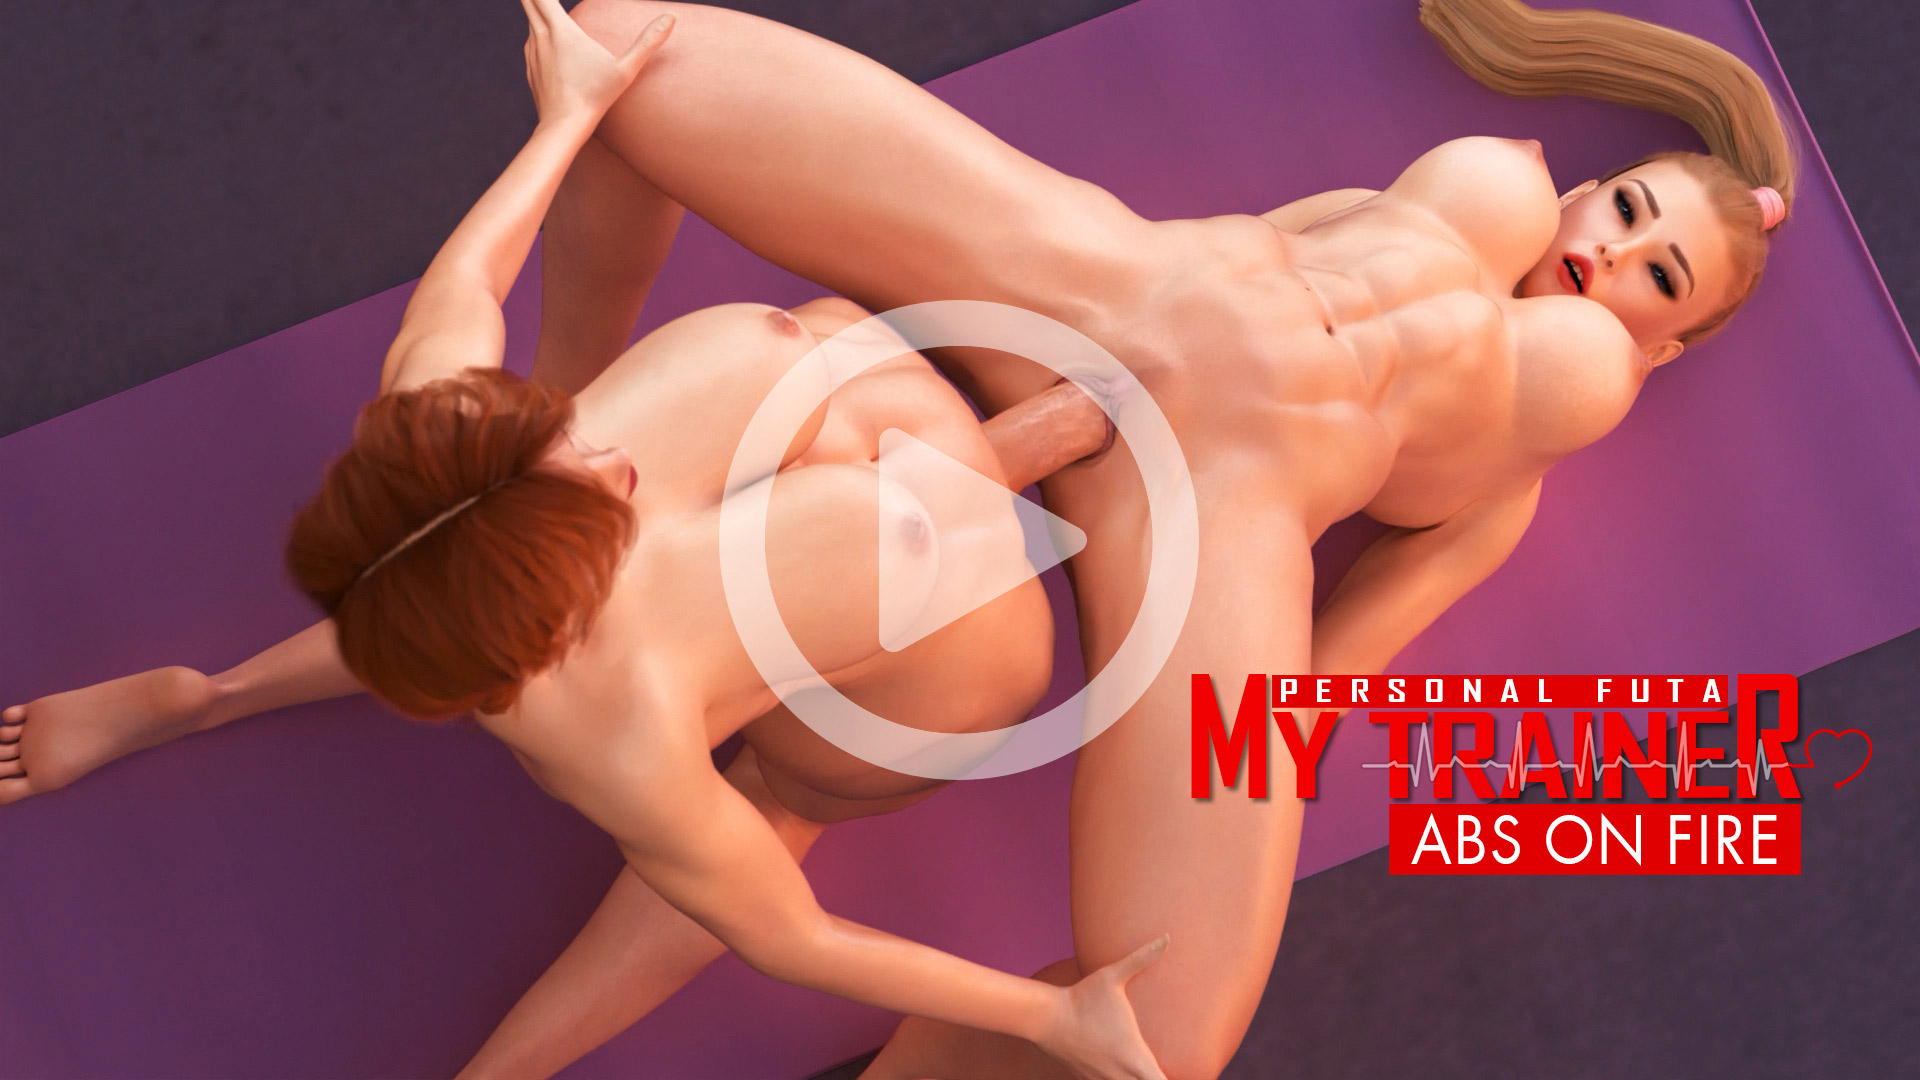 My Personal Futa Trainer - Abs On Fire animation poster